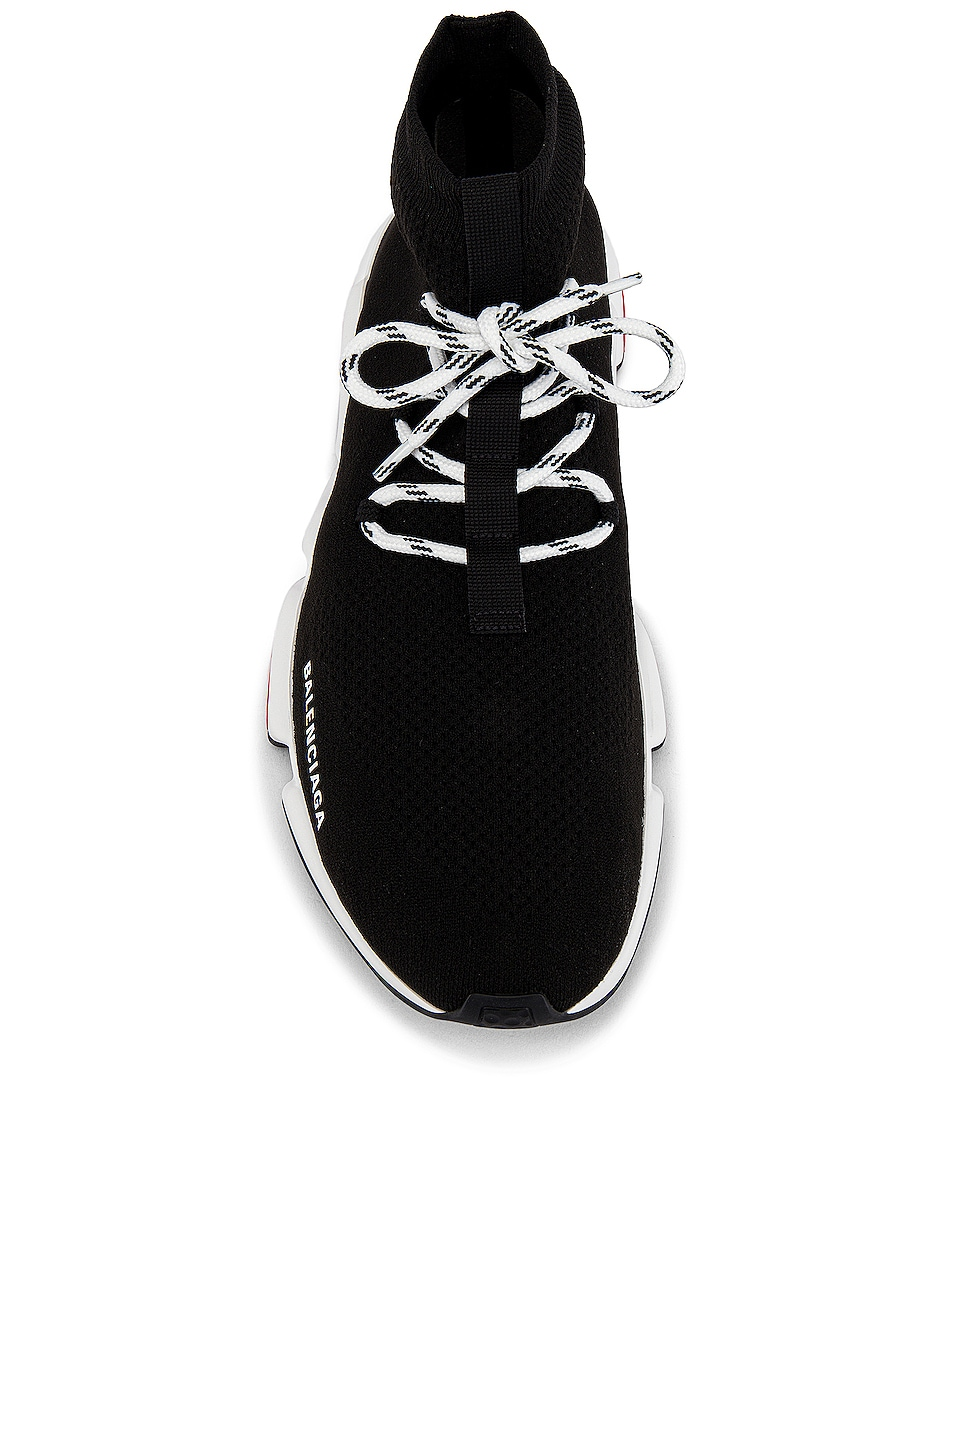 Image 4 of Balenciaga Speed Light Sneaker Lace Up in Black & White & Red & Black